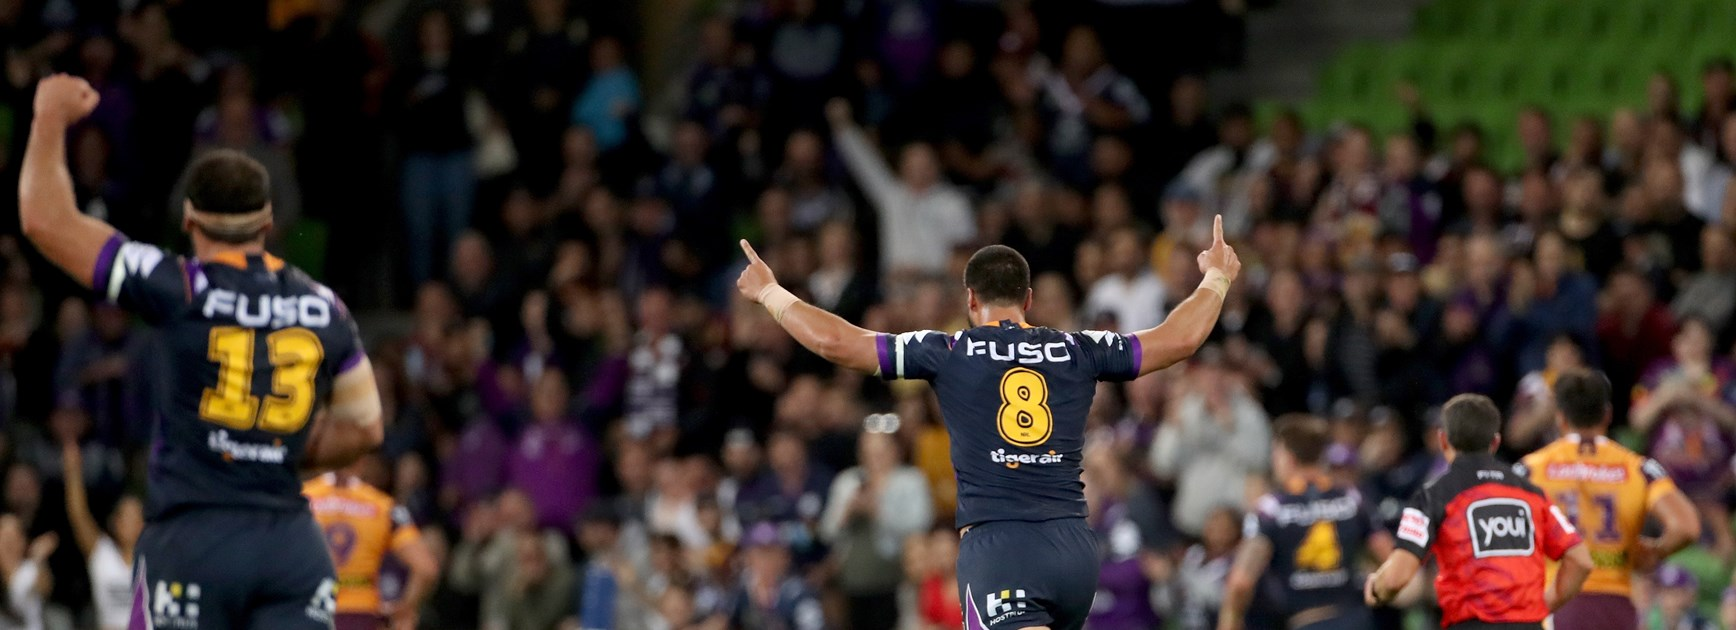 "Jesse Bromwich deals with ""stupid mistake"", follows with big try"